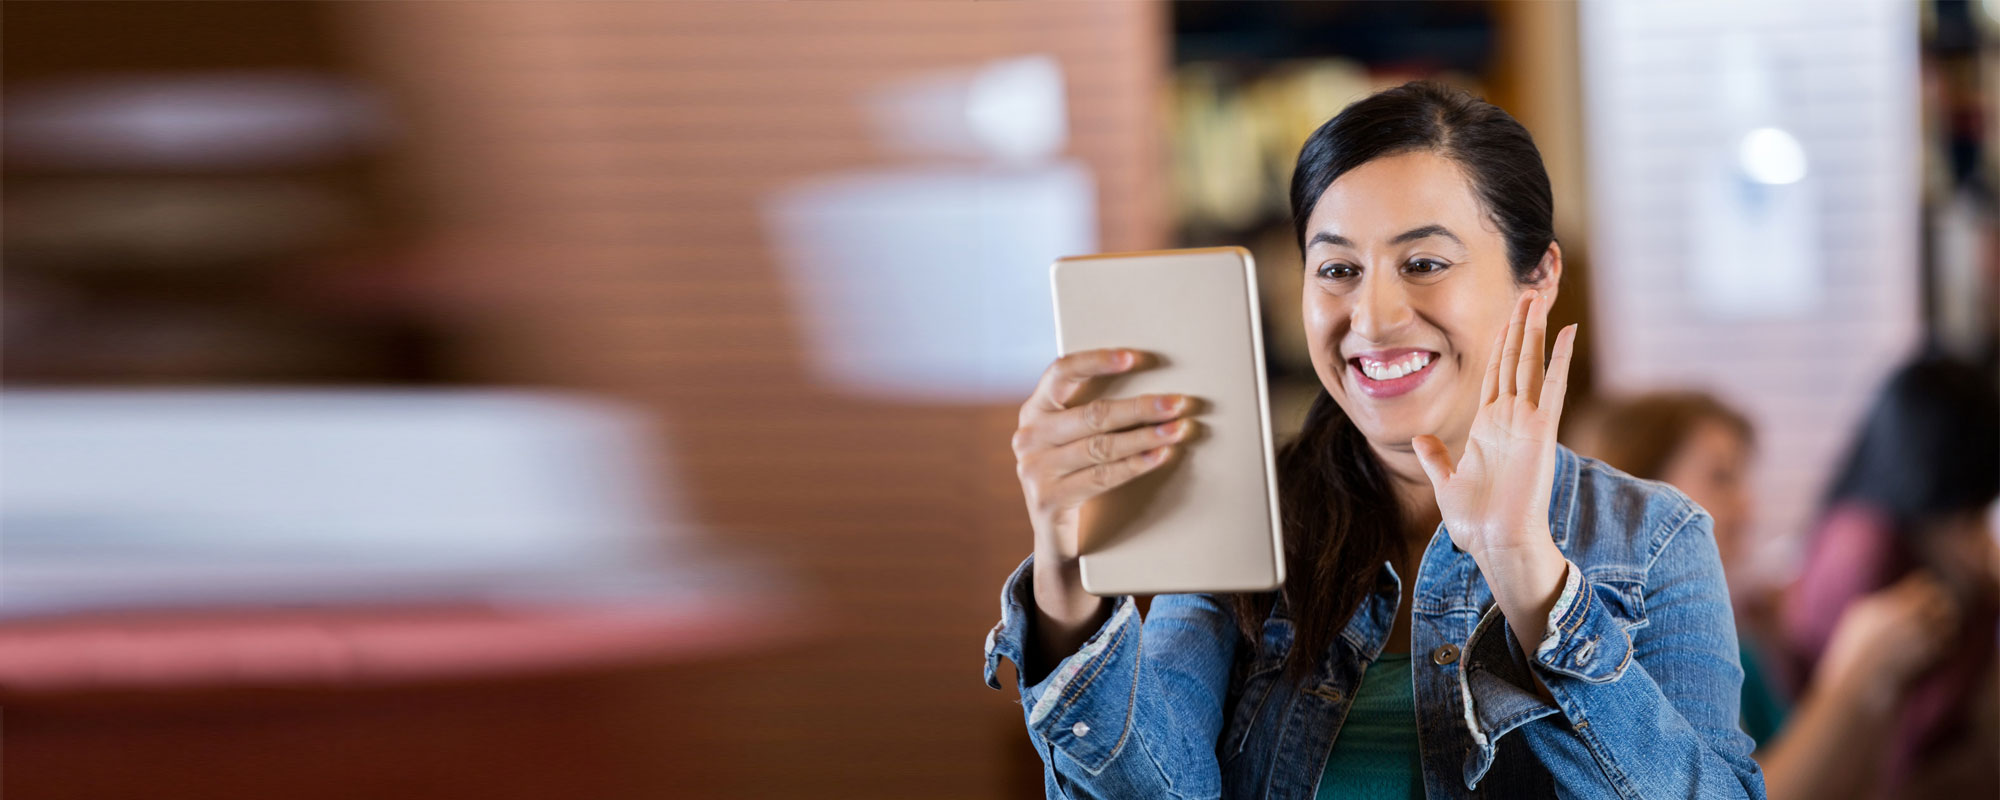 Young female in blue jean jacket holds up tablet and waves on video call.